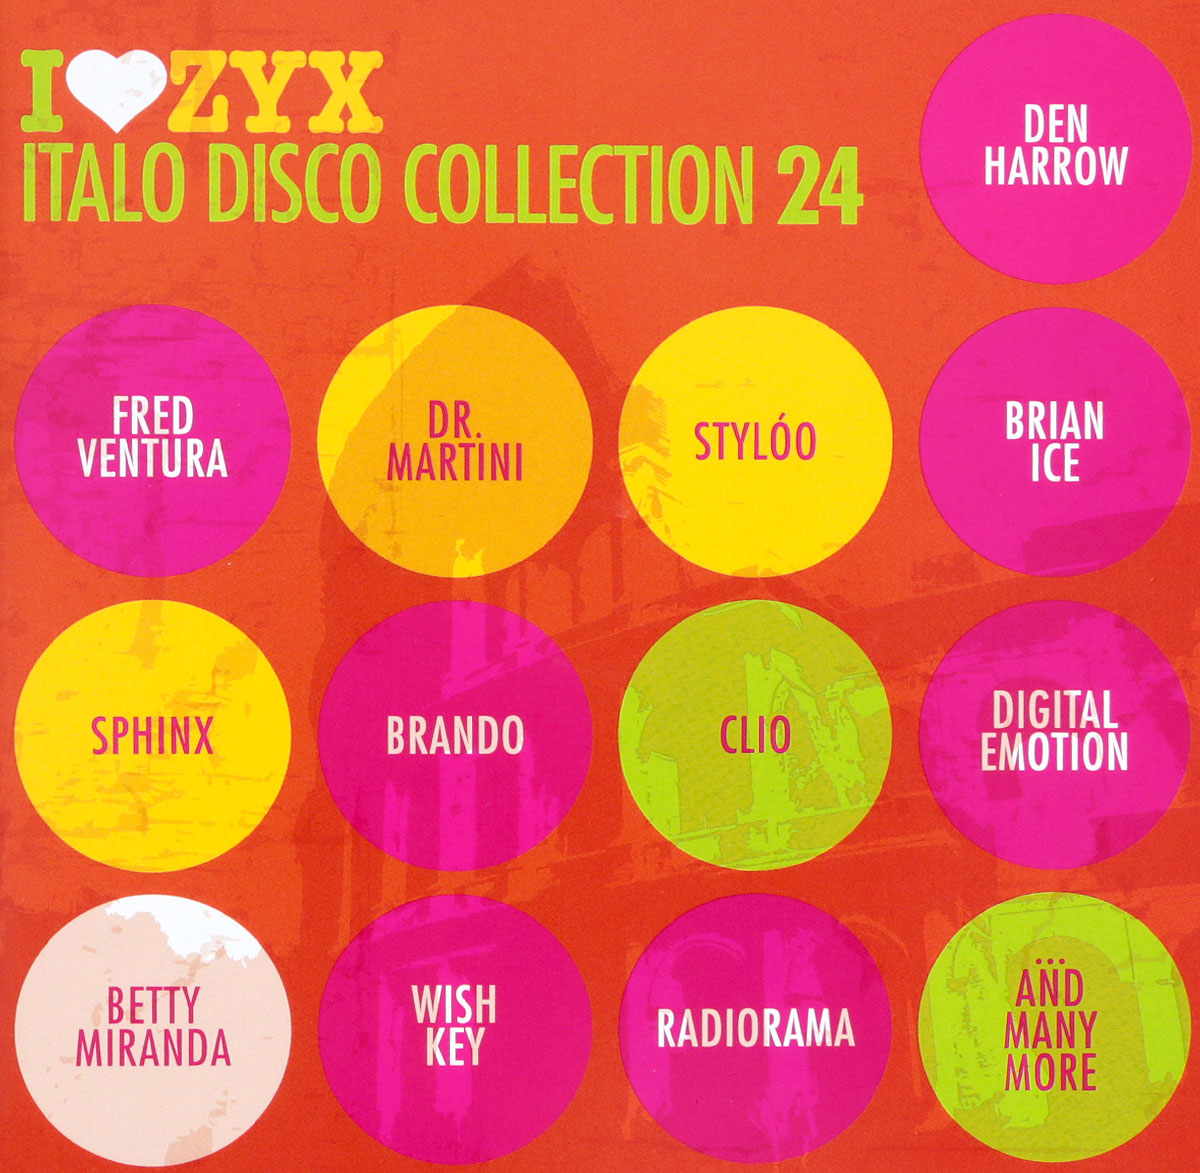 Дэн Хэрроу,Фред Вентура,Styloo Italo Disco Collection 24 (3 CD) цена и фото